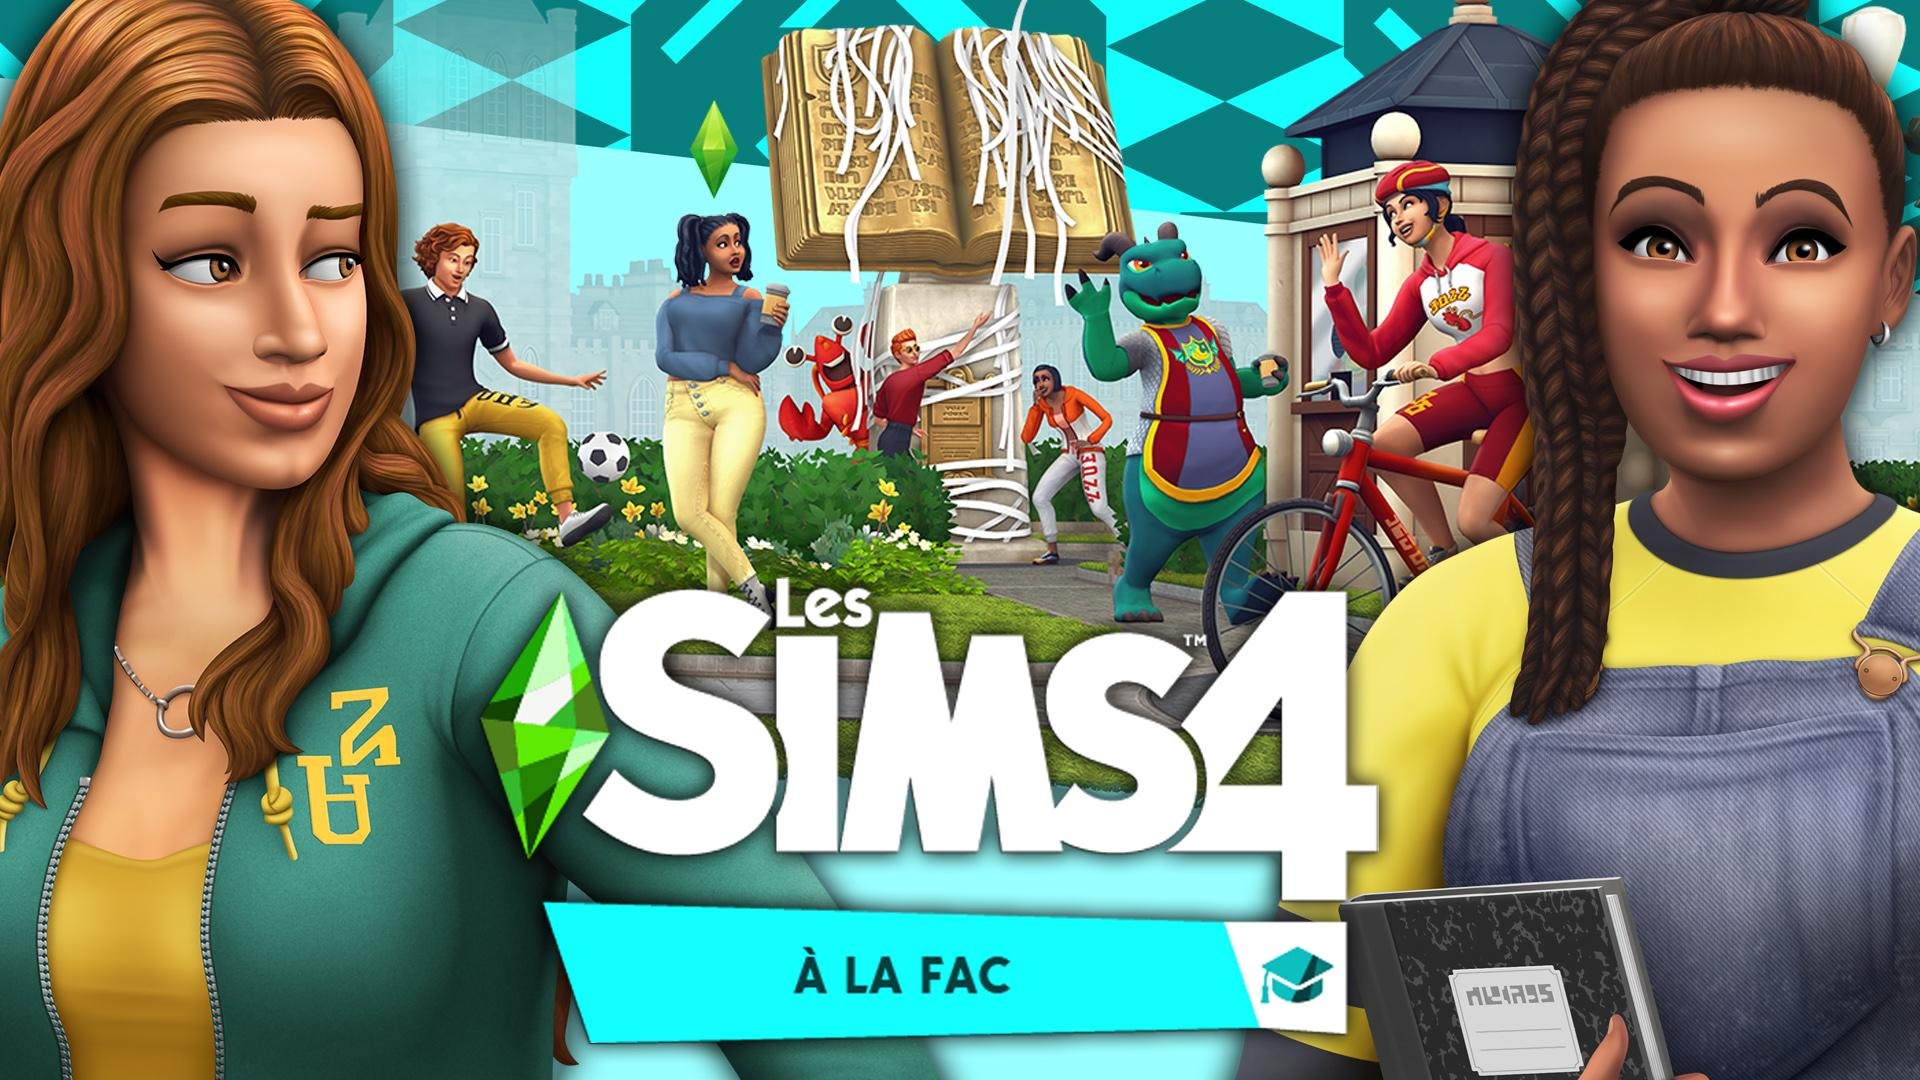 PACK D'EXTENSION : A LA FAC 🎓 ANALYSE TRAILER || LES SIMS 4